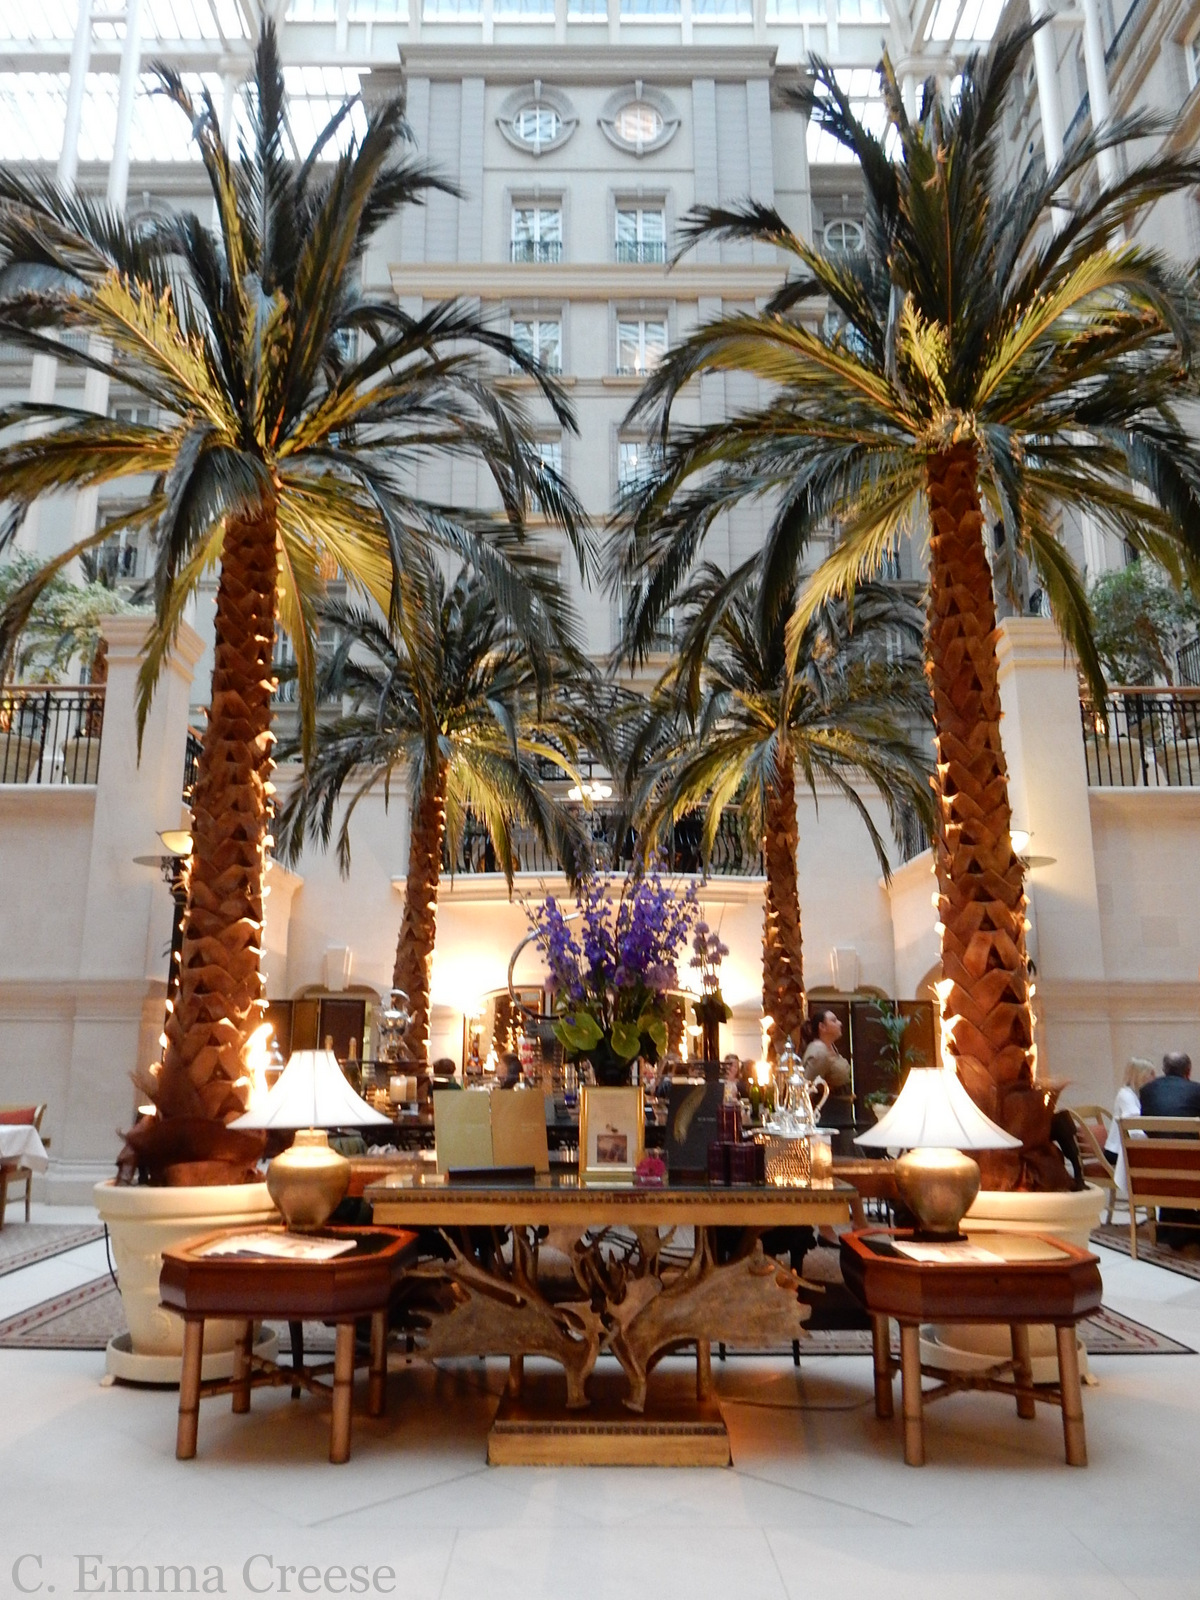 The Winter Garden Landmark Hotel Restaurant Review Adventures of a London Kiwi